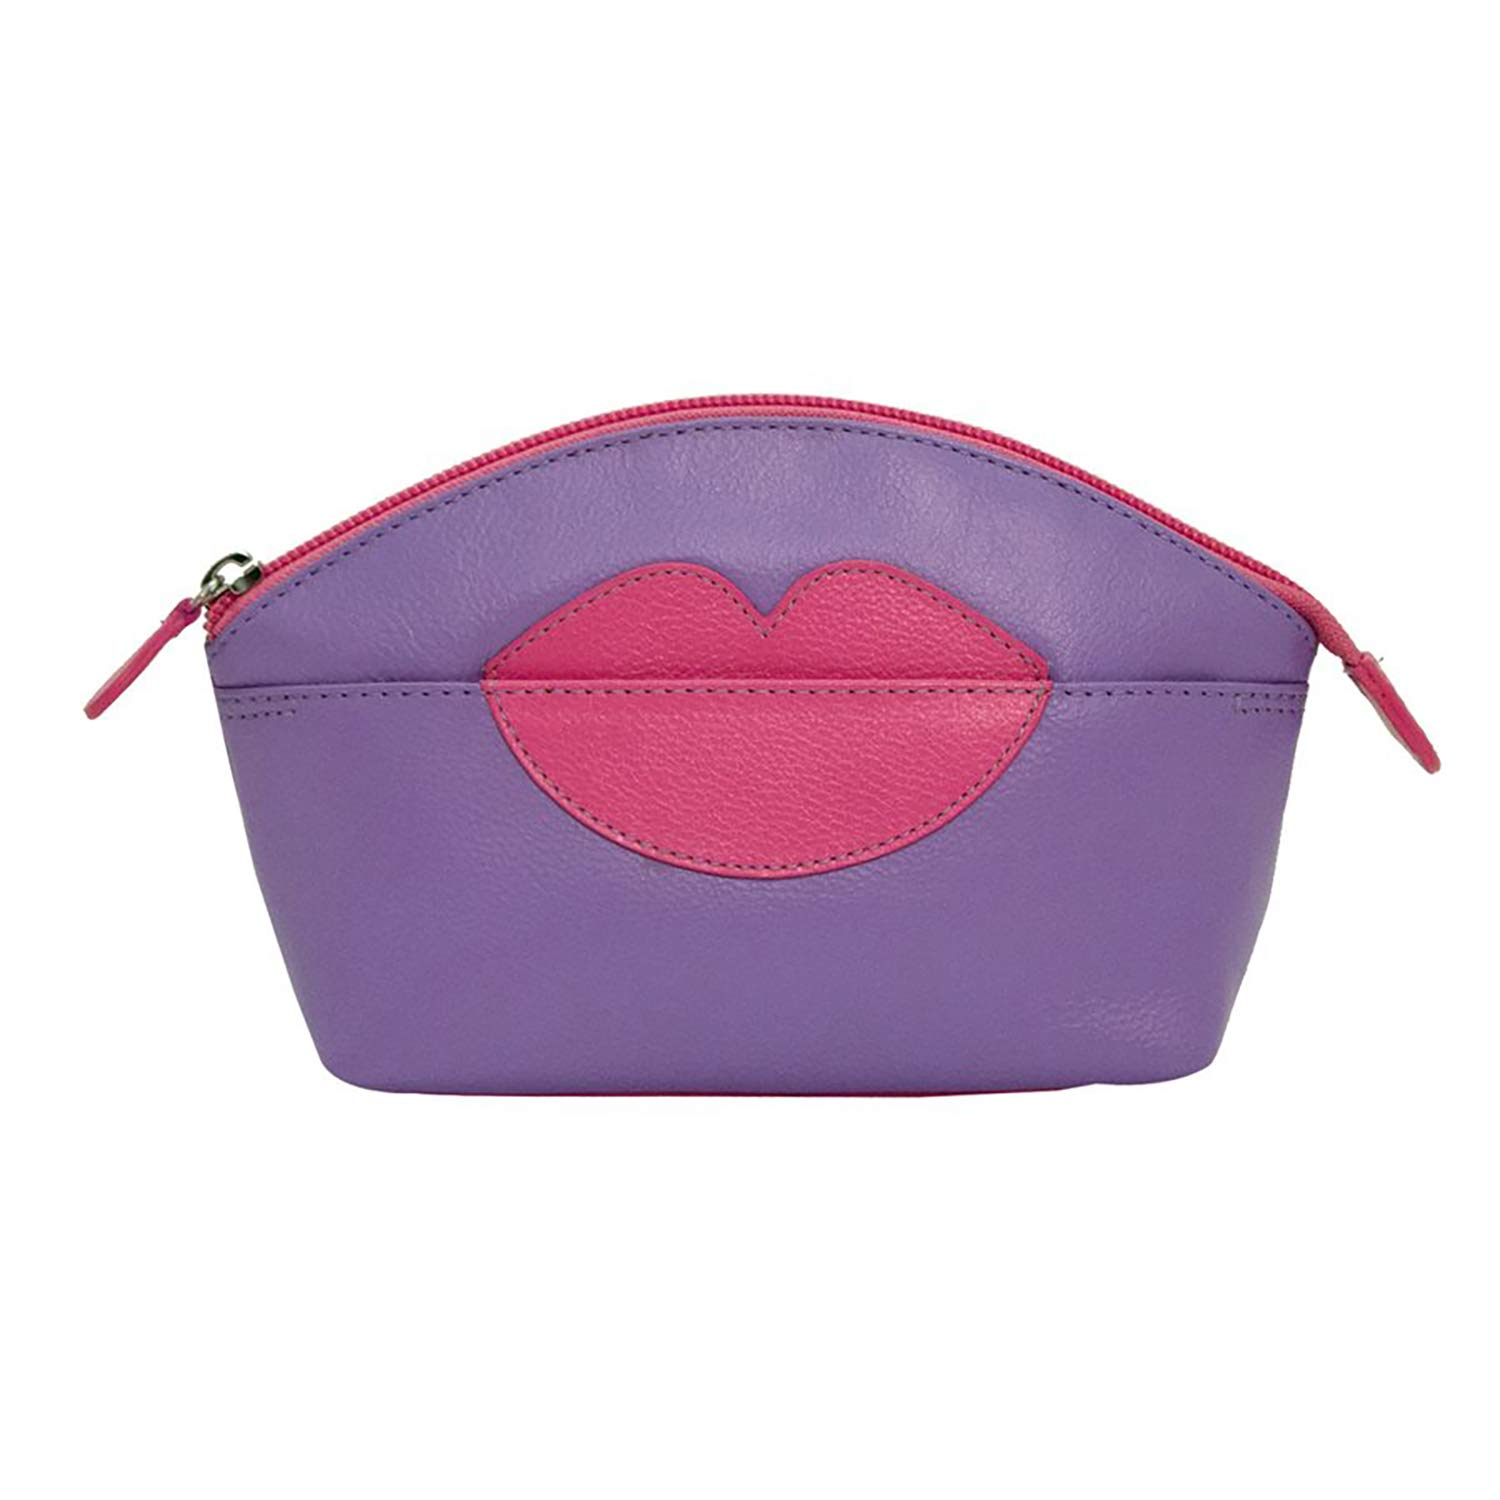 ili New York Hot Lips Leather Cosmetic Makeup Case Amethyst Hot Pink